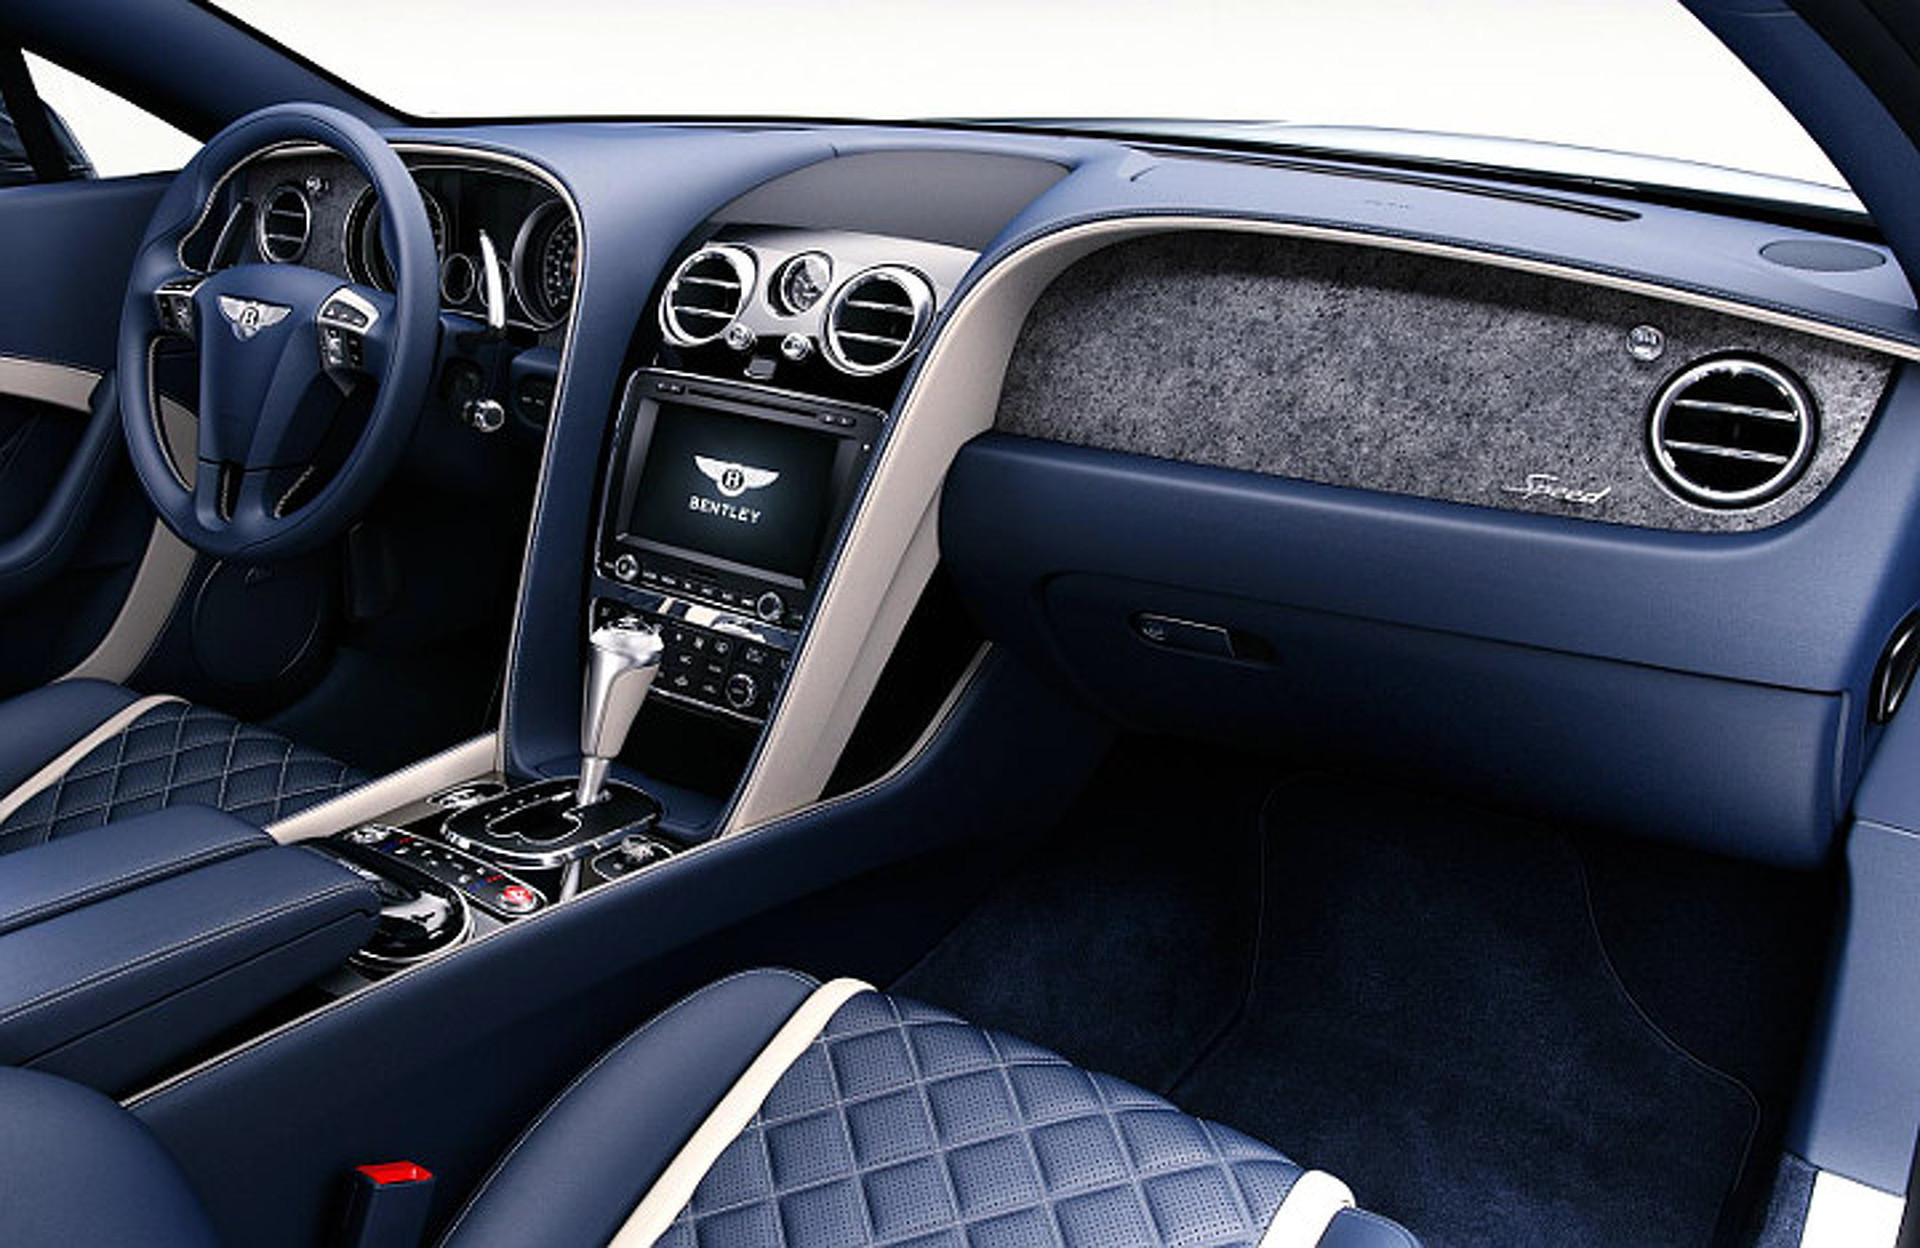 7 Completely Weird and Superfluous Luxury Features